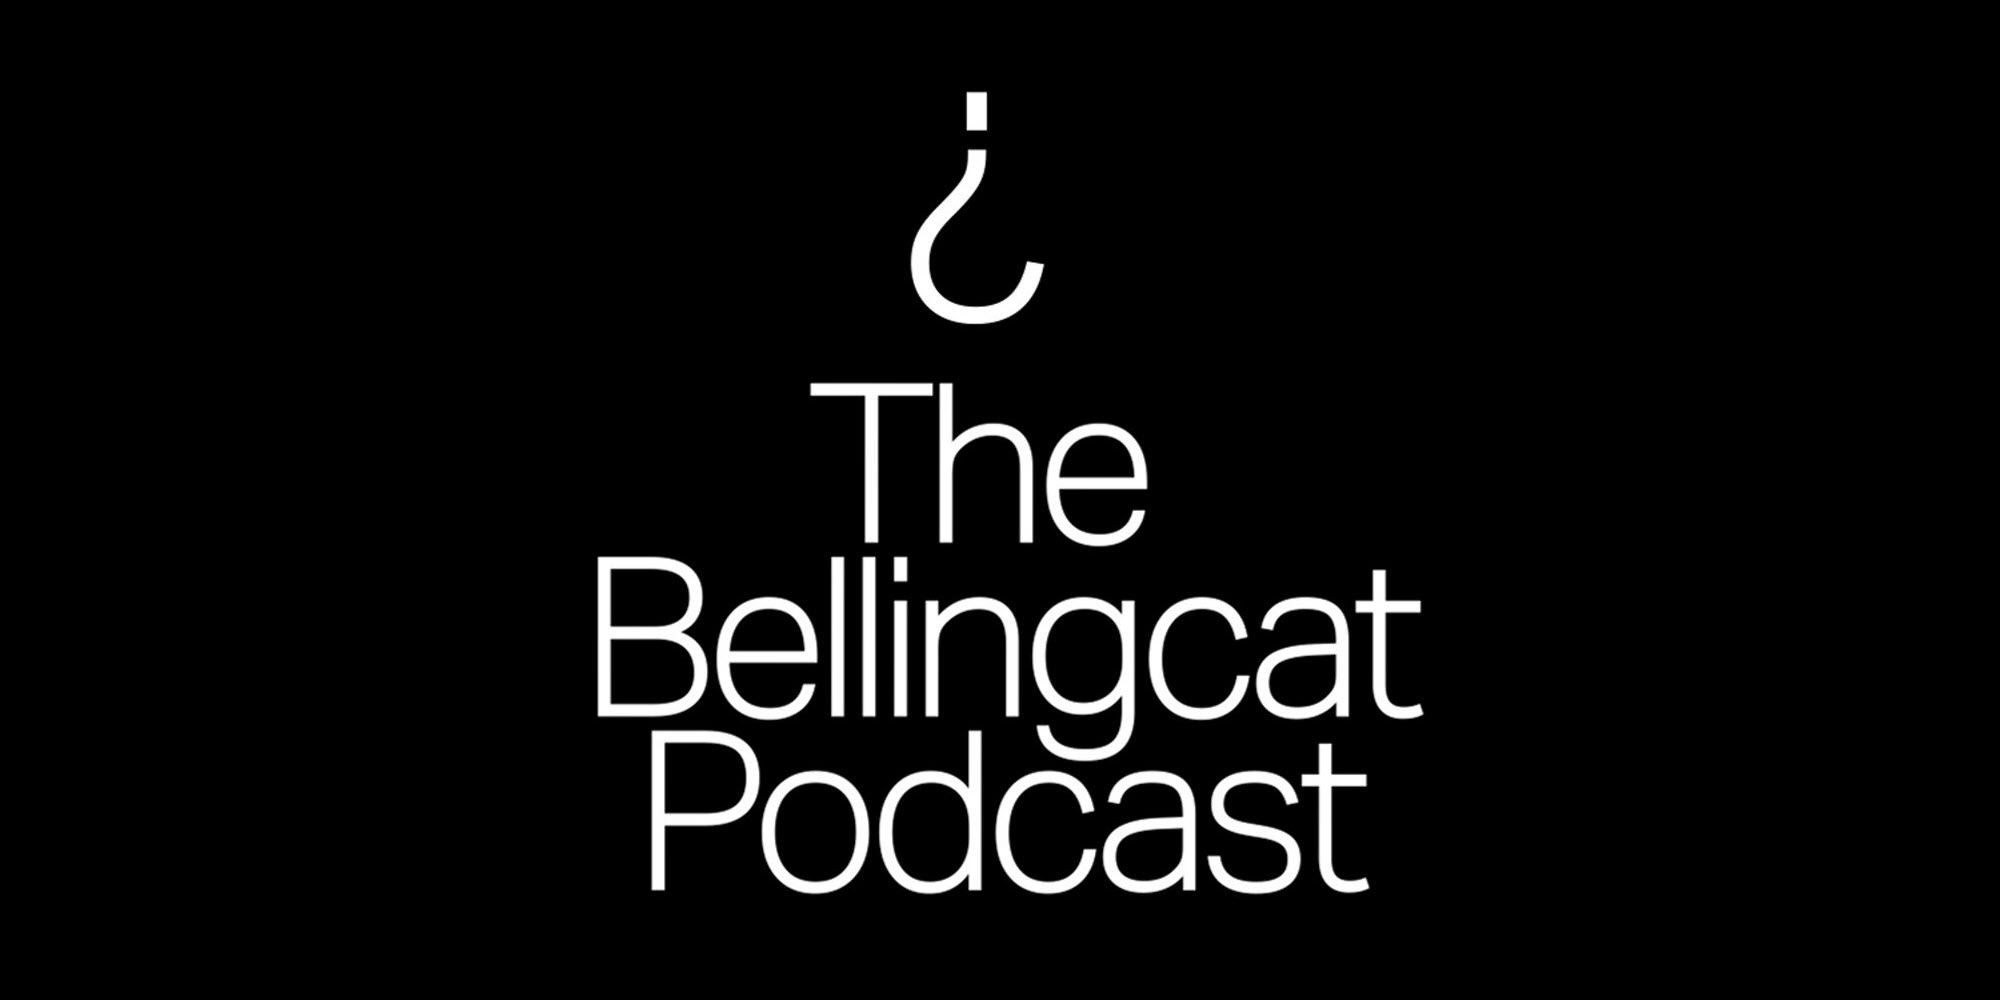 bellingcat - Bellingcat Podcast: MH17, Episode 1 Guide: The